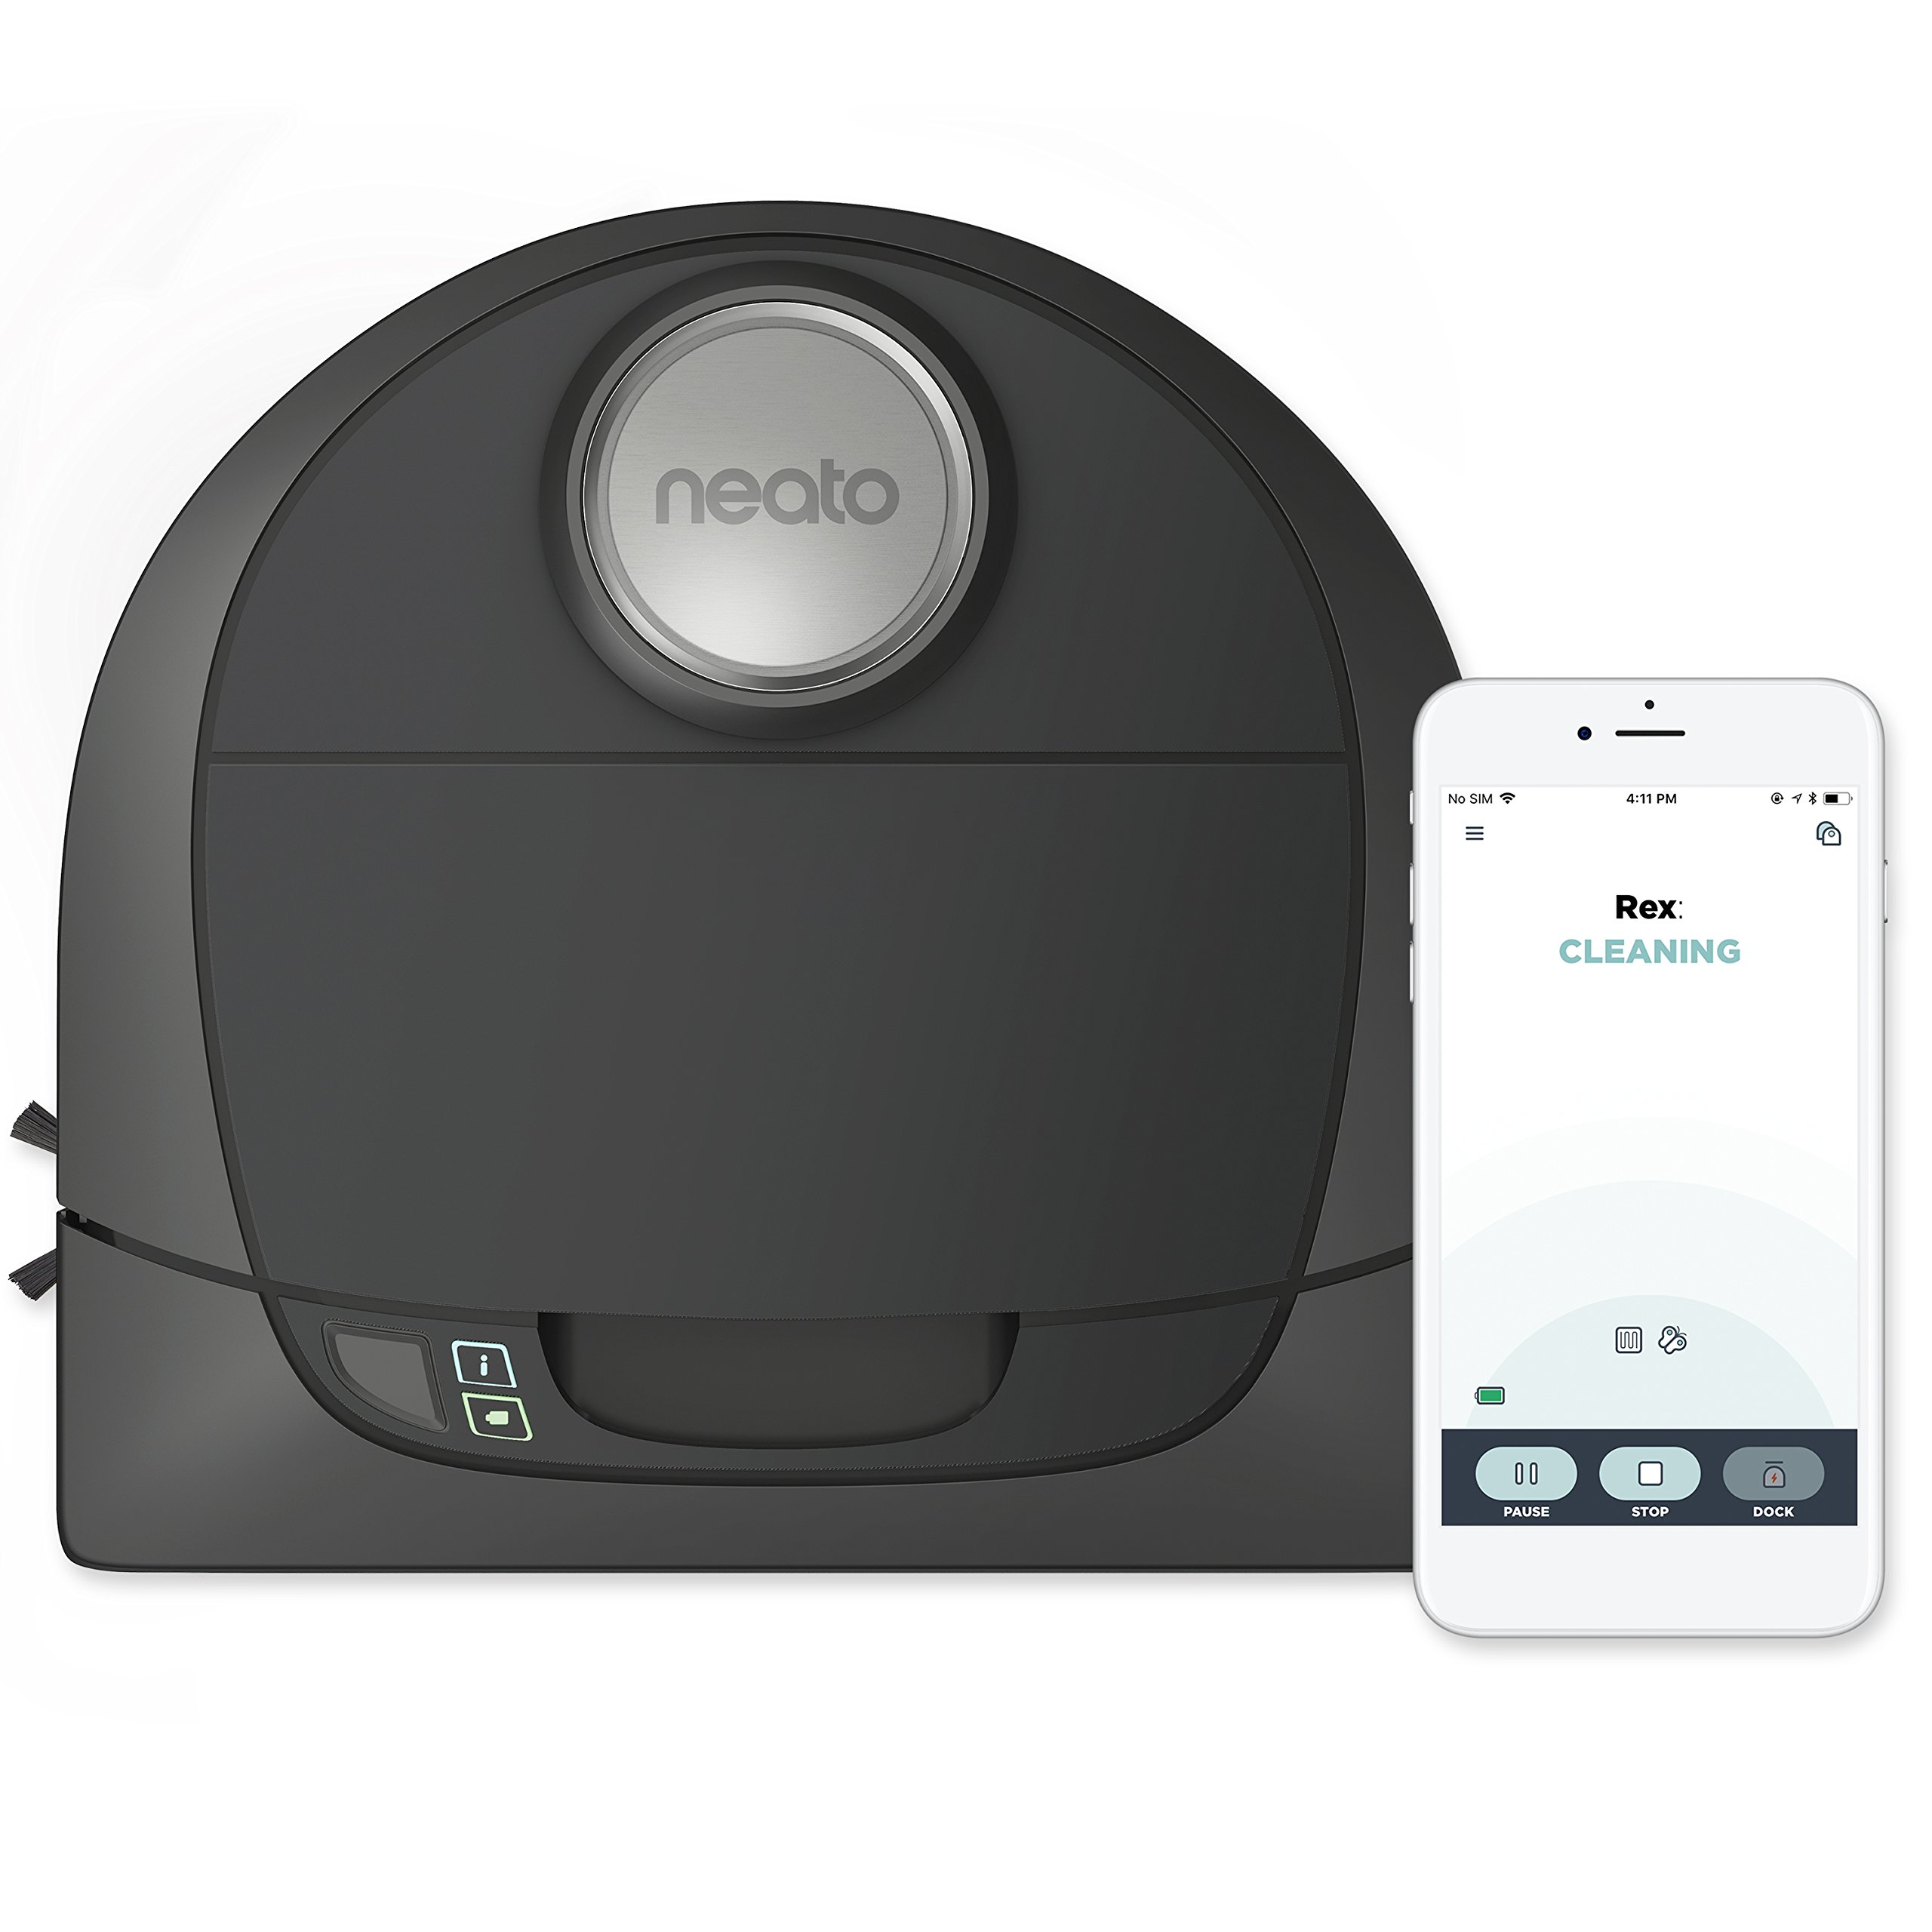 Neato Botvac D5 Connected Laser Guided Robot Vacuum, Pet & Allergy, Works with Smartphones, Alexa, Smartwatches by Neato Robotics